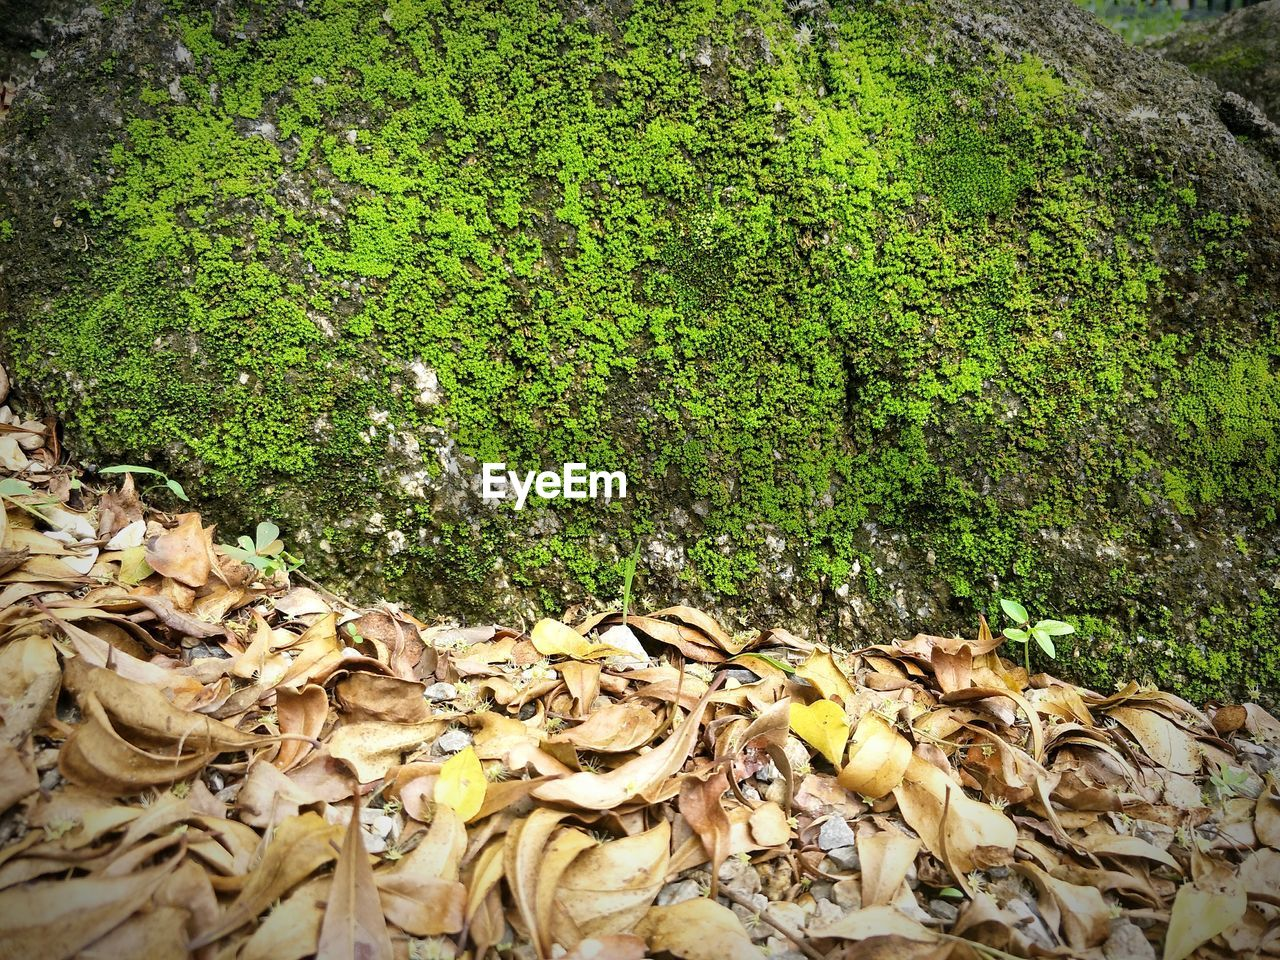 plant part, leaf, plant, autumn, nature, day, leaves, falling, no people, growth, green color, tree, land, dry, change, beauty in nature, tranquility, forest, field, abundance, outdoors, messy, natural condition